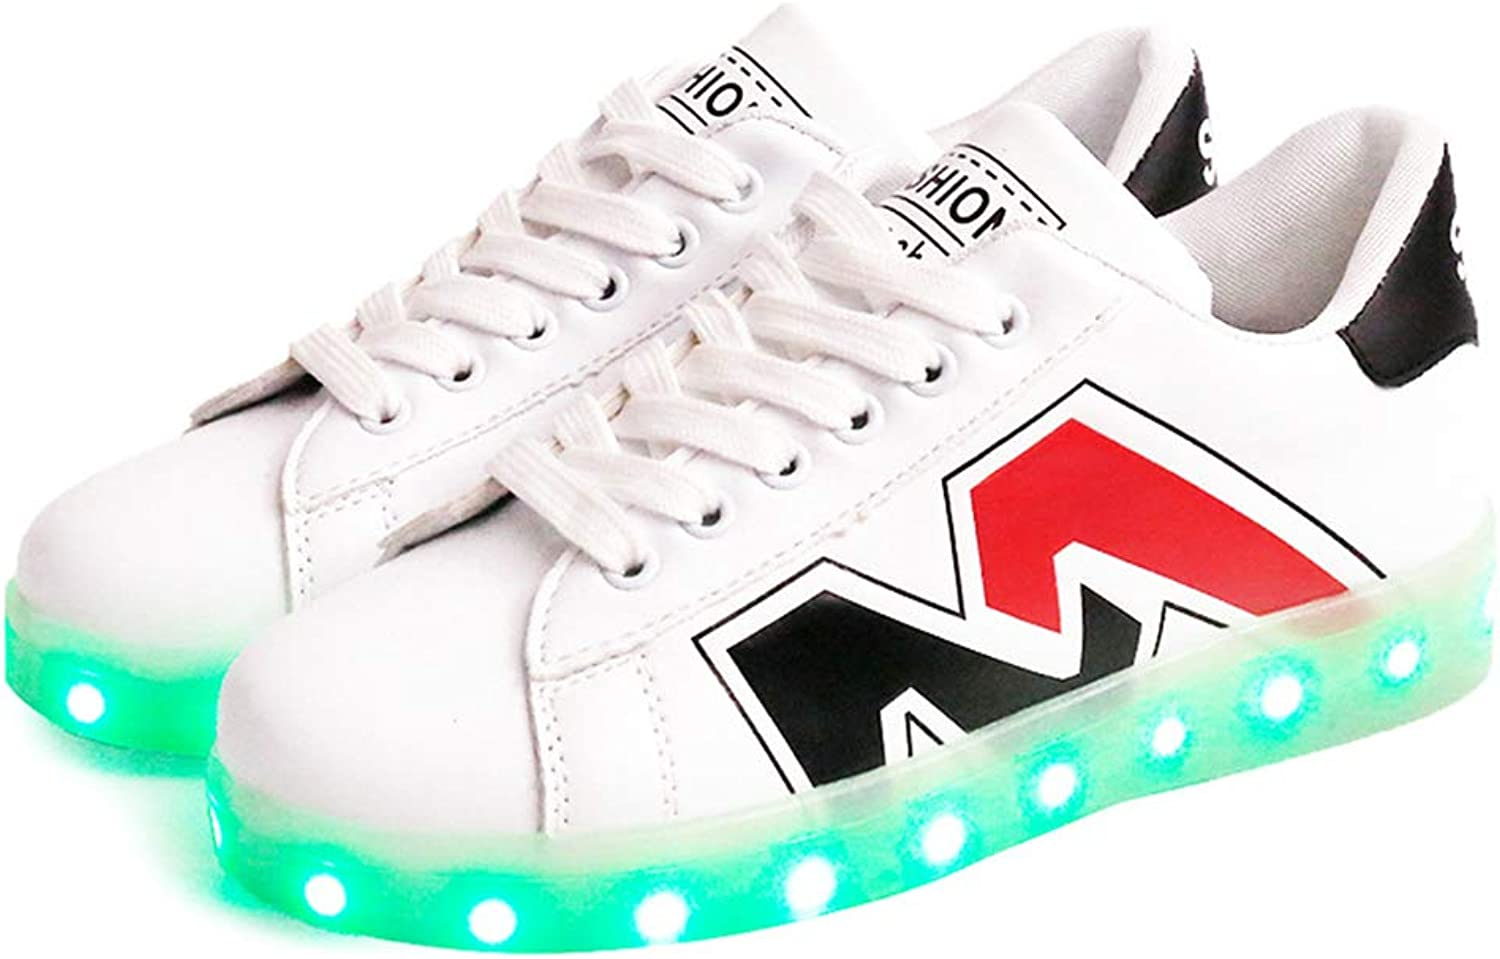 LUOBM LED Fluorescent shoes Fashion Camouflage Sport shoes USB Charging Couple shoes